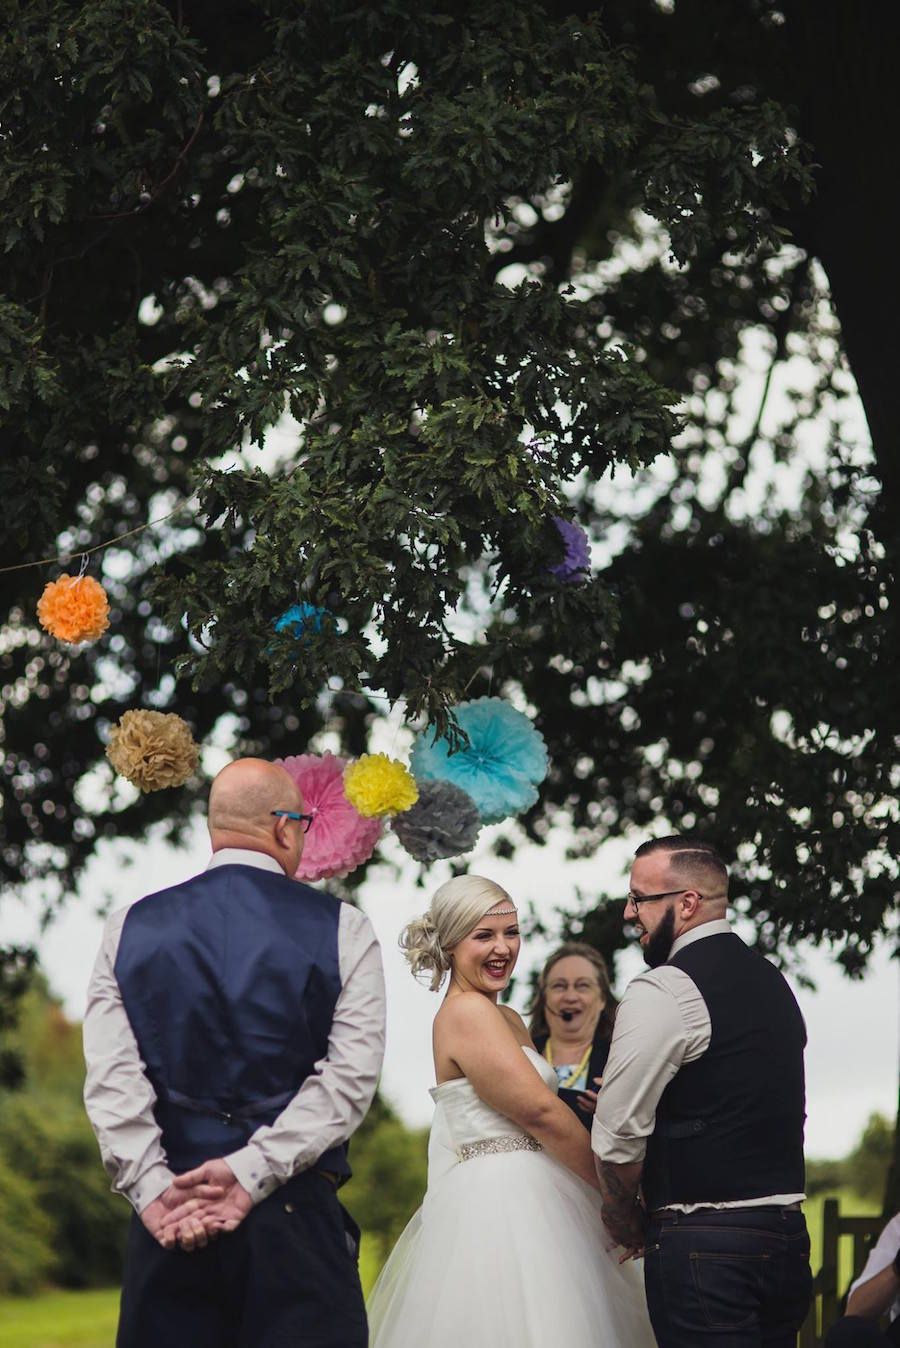 outdoor ceremony under the oak tree at Bawdon Lodge Farm - Sami Tipi Wedding at Bawdon Lodge Farm